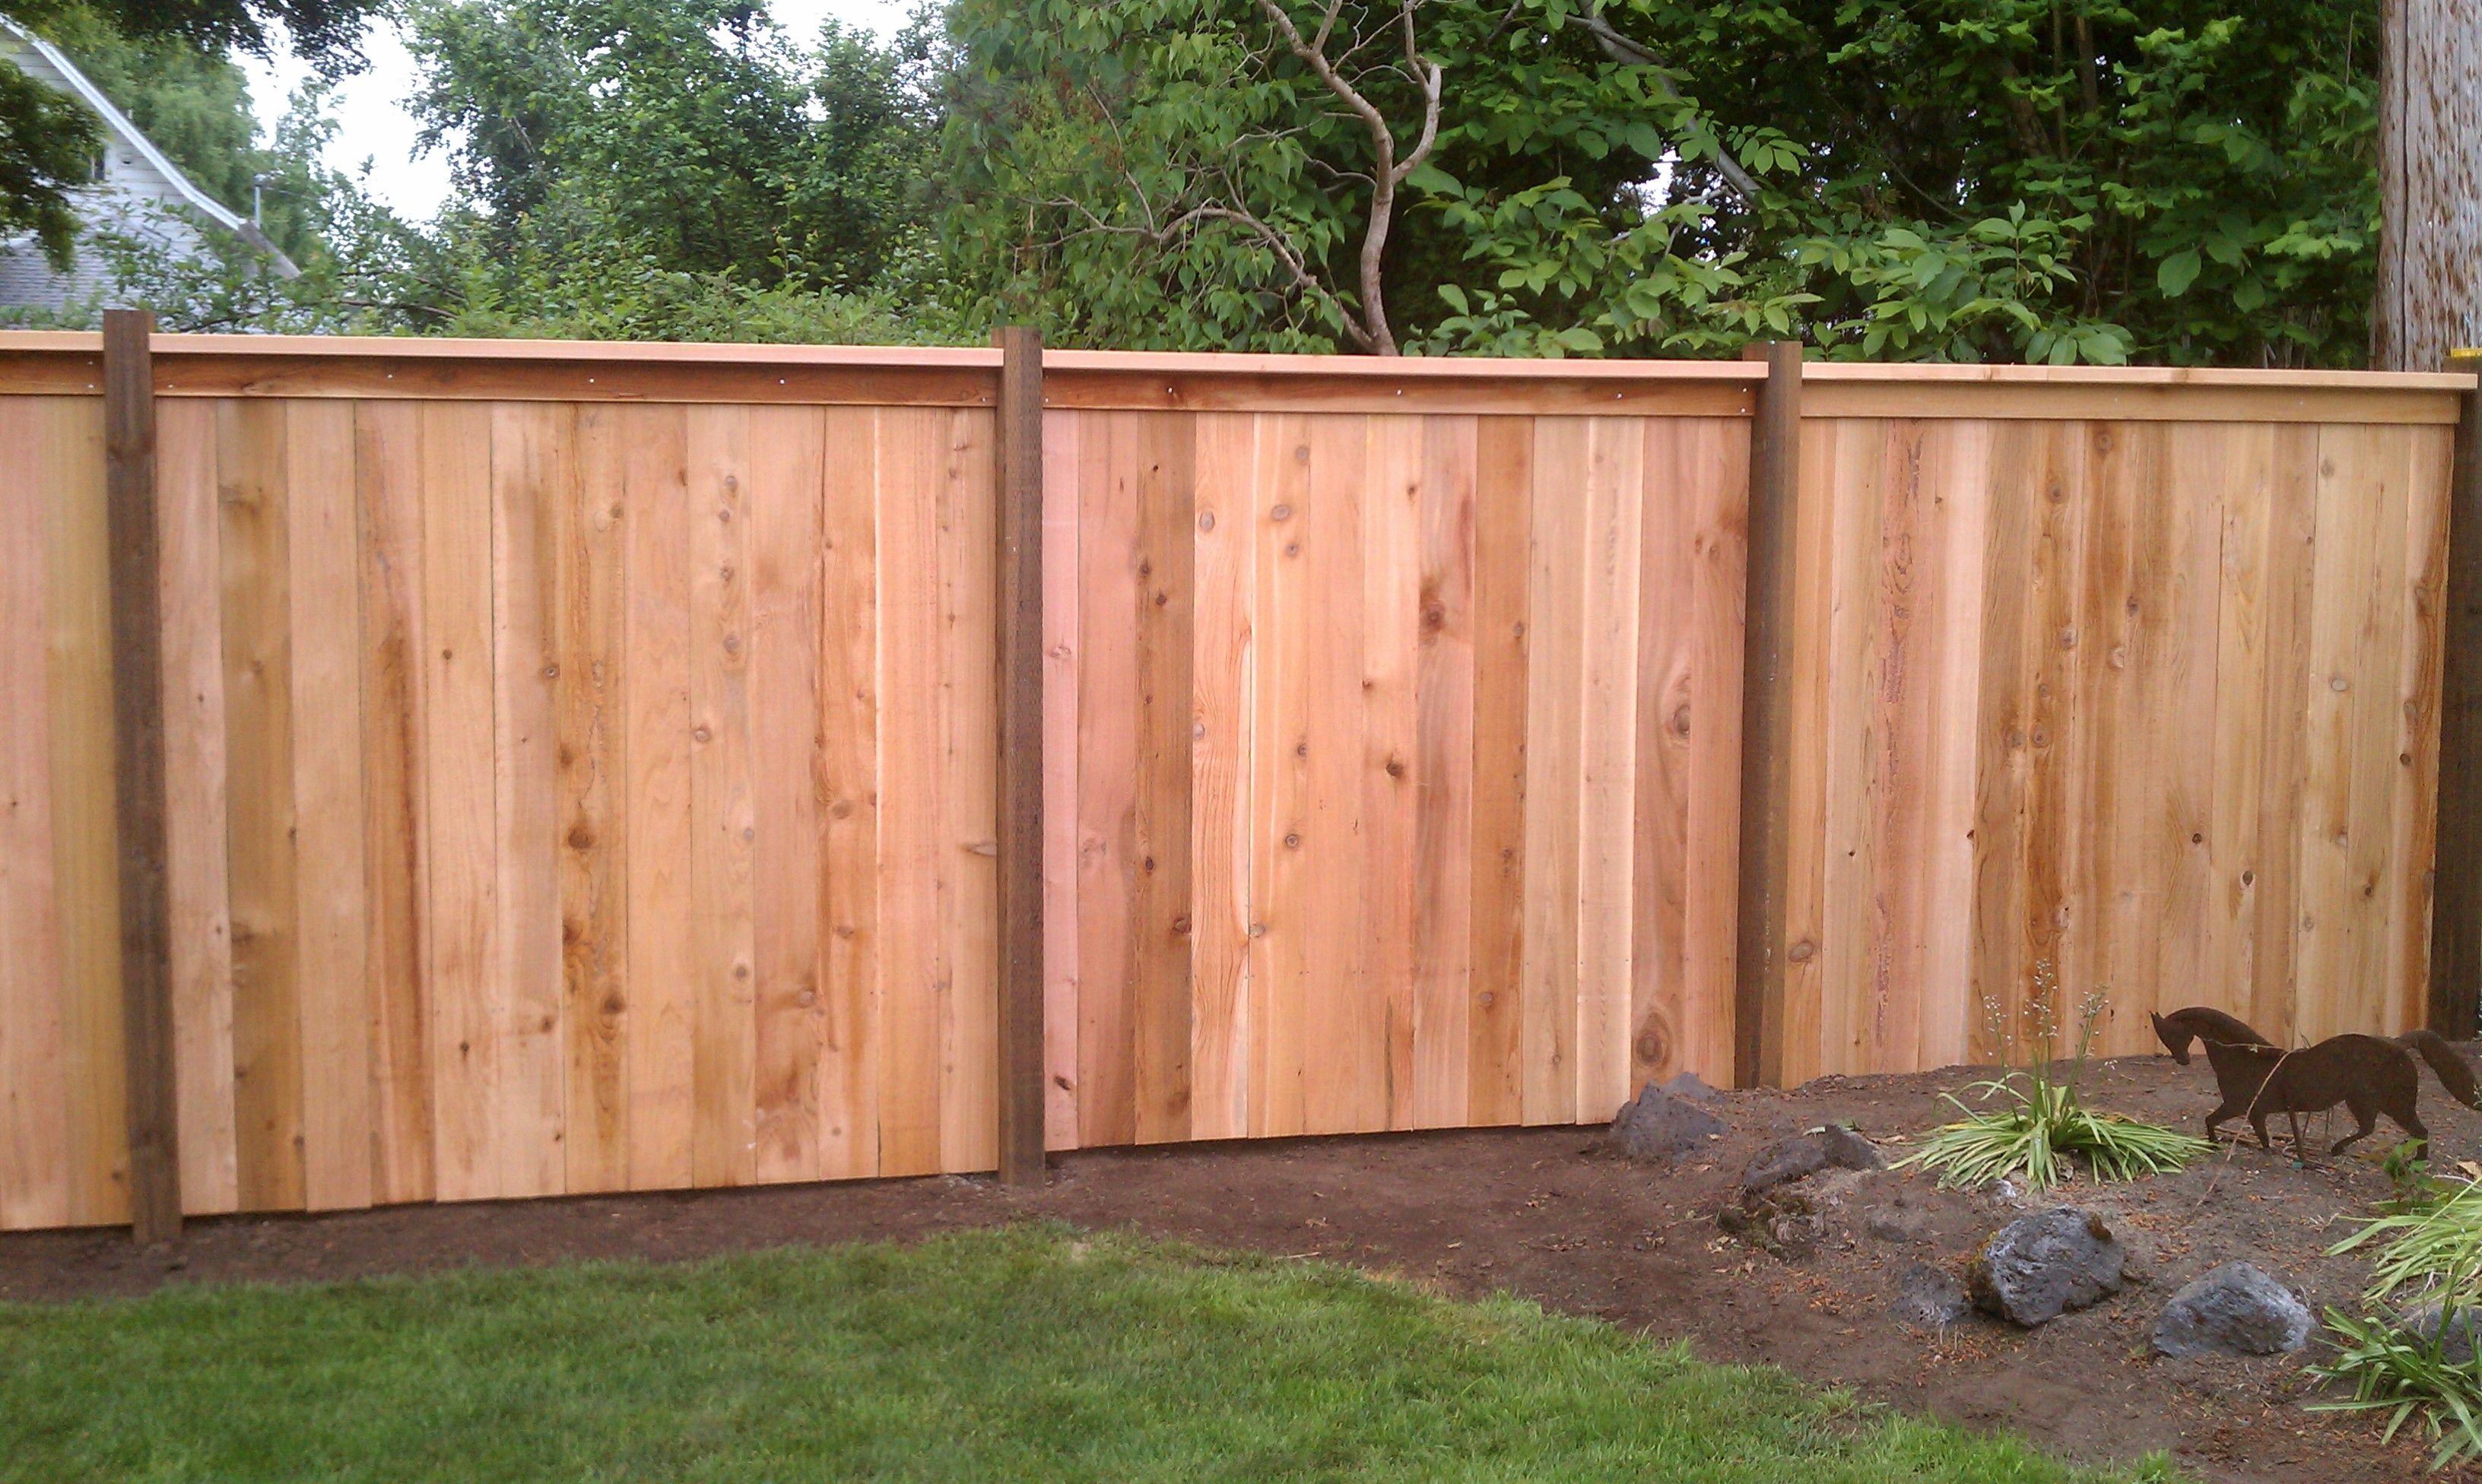 Cap And Bevel Fencing 1 Grade With 4x6 Pressure Treated Posts And 1x6 Western Red Cedar Boards Cedar Fence Wooden Fence Wooden Fence Posts